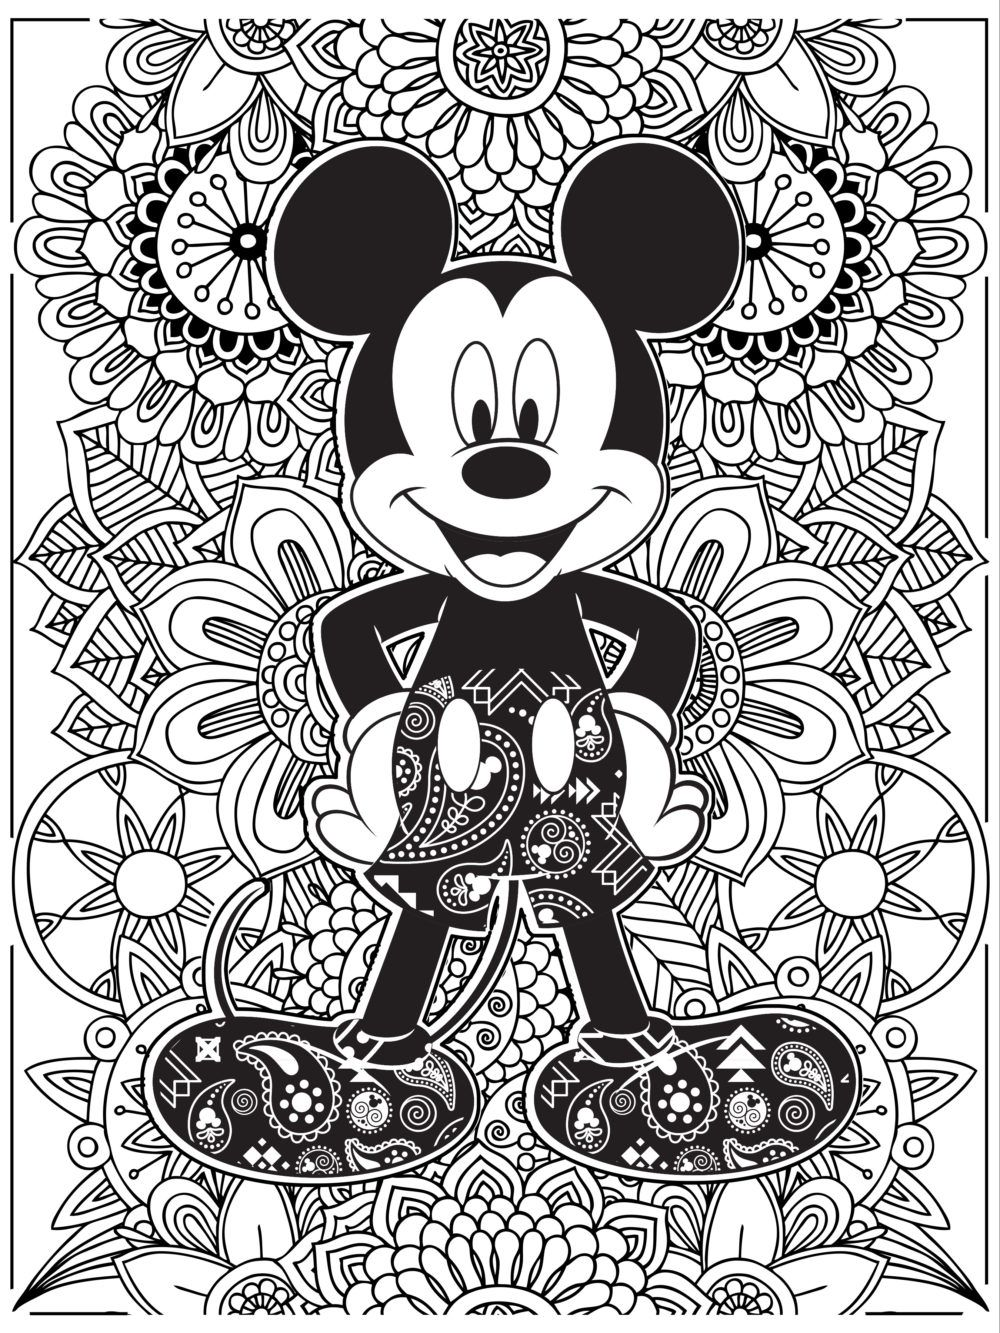 Ausmalbilder Erwachsene Disney : Celebrate National Coloring Book Day With Ausmalbilder Malen Und